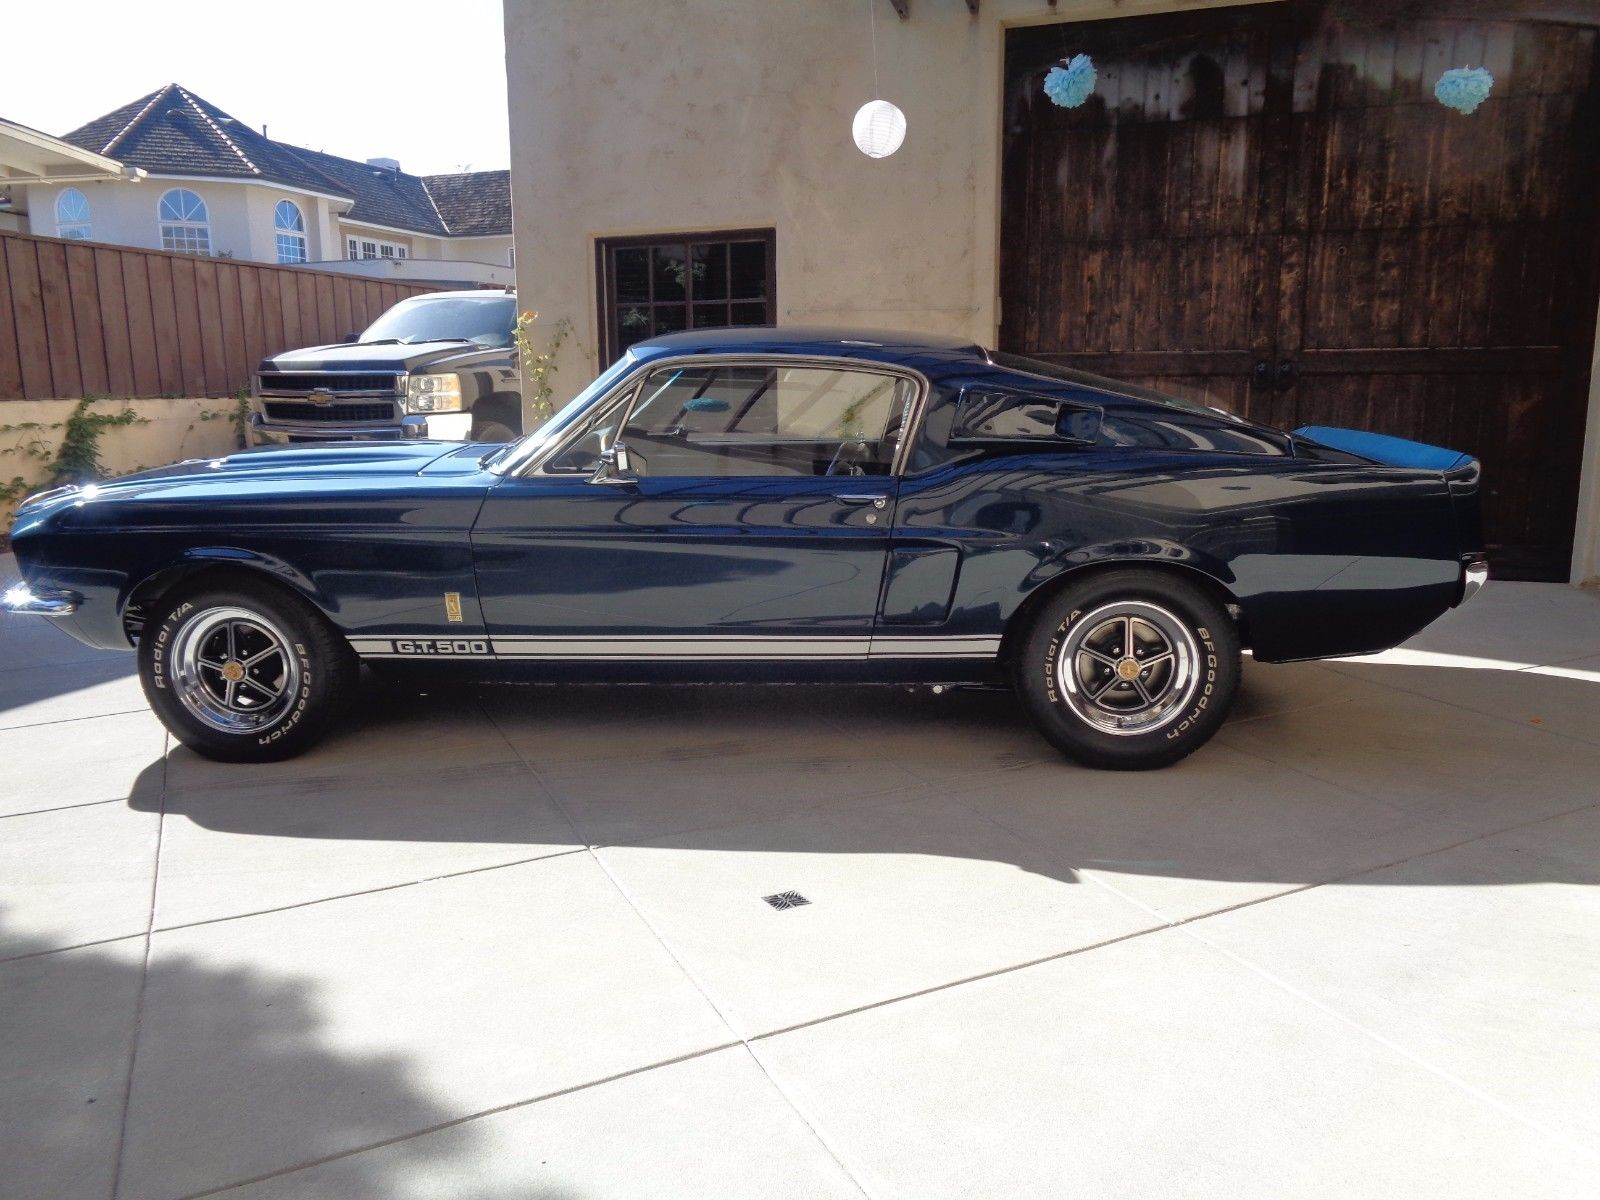 Awesome 1967 Ford Mustang Fastback Shelby GT500 1967 SHELBY MUSTANG